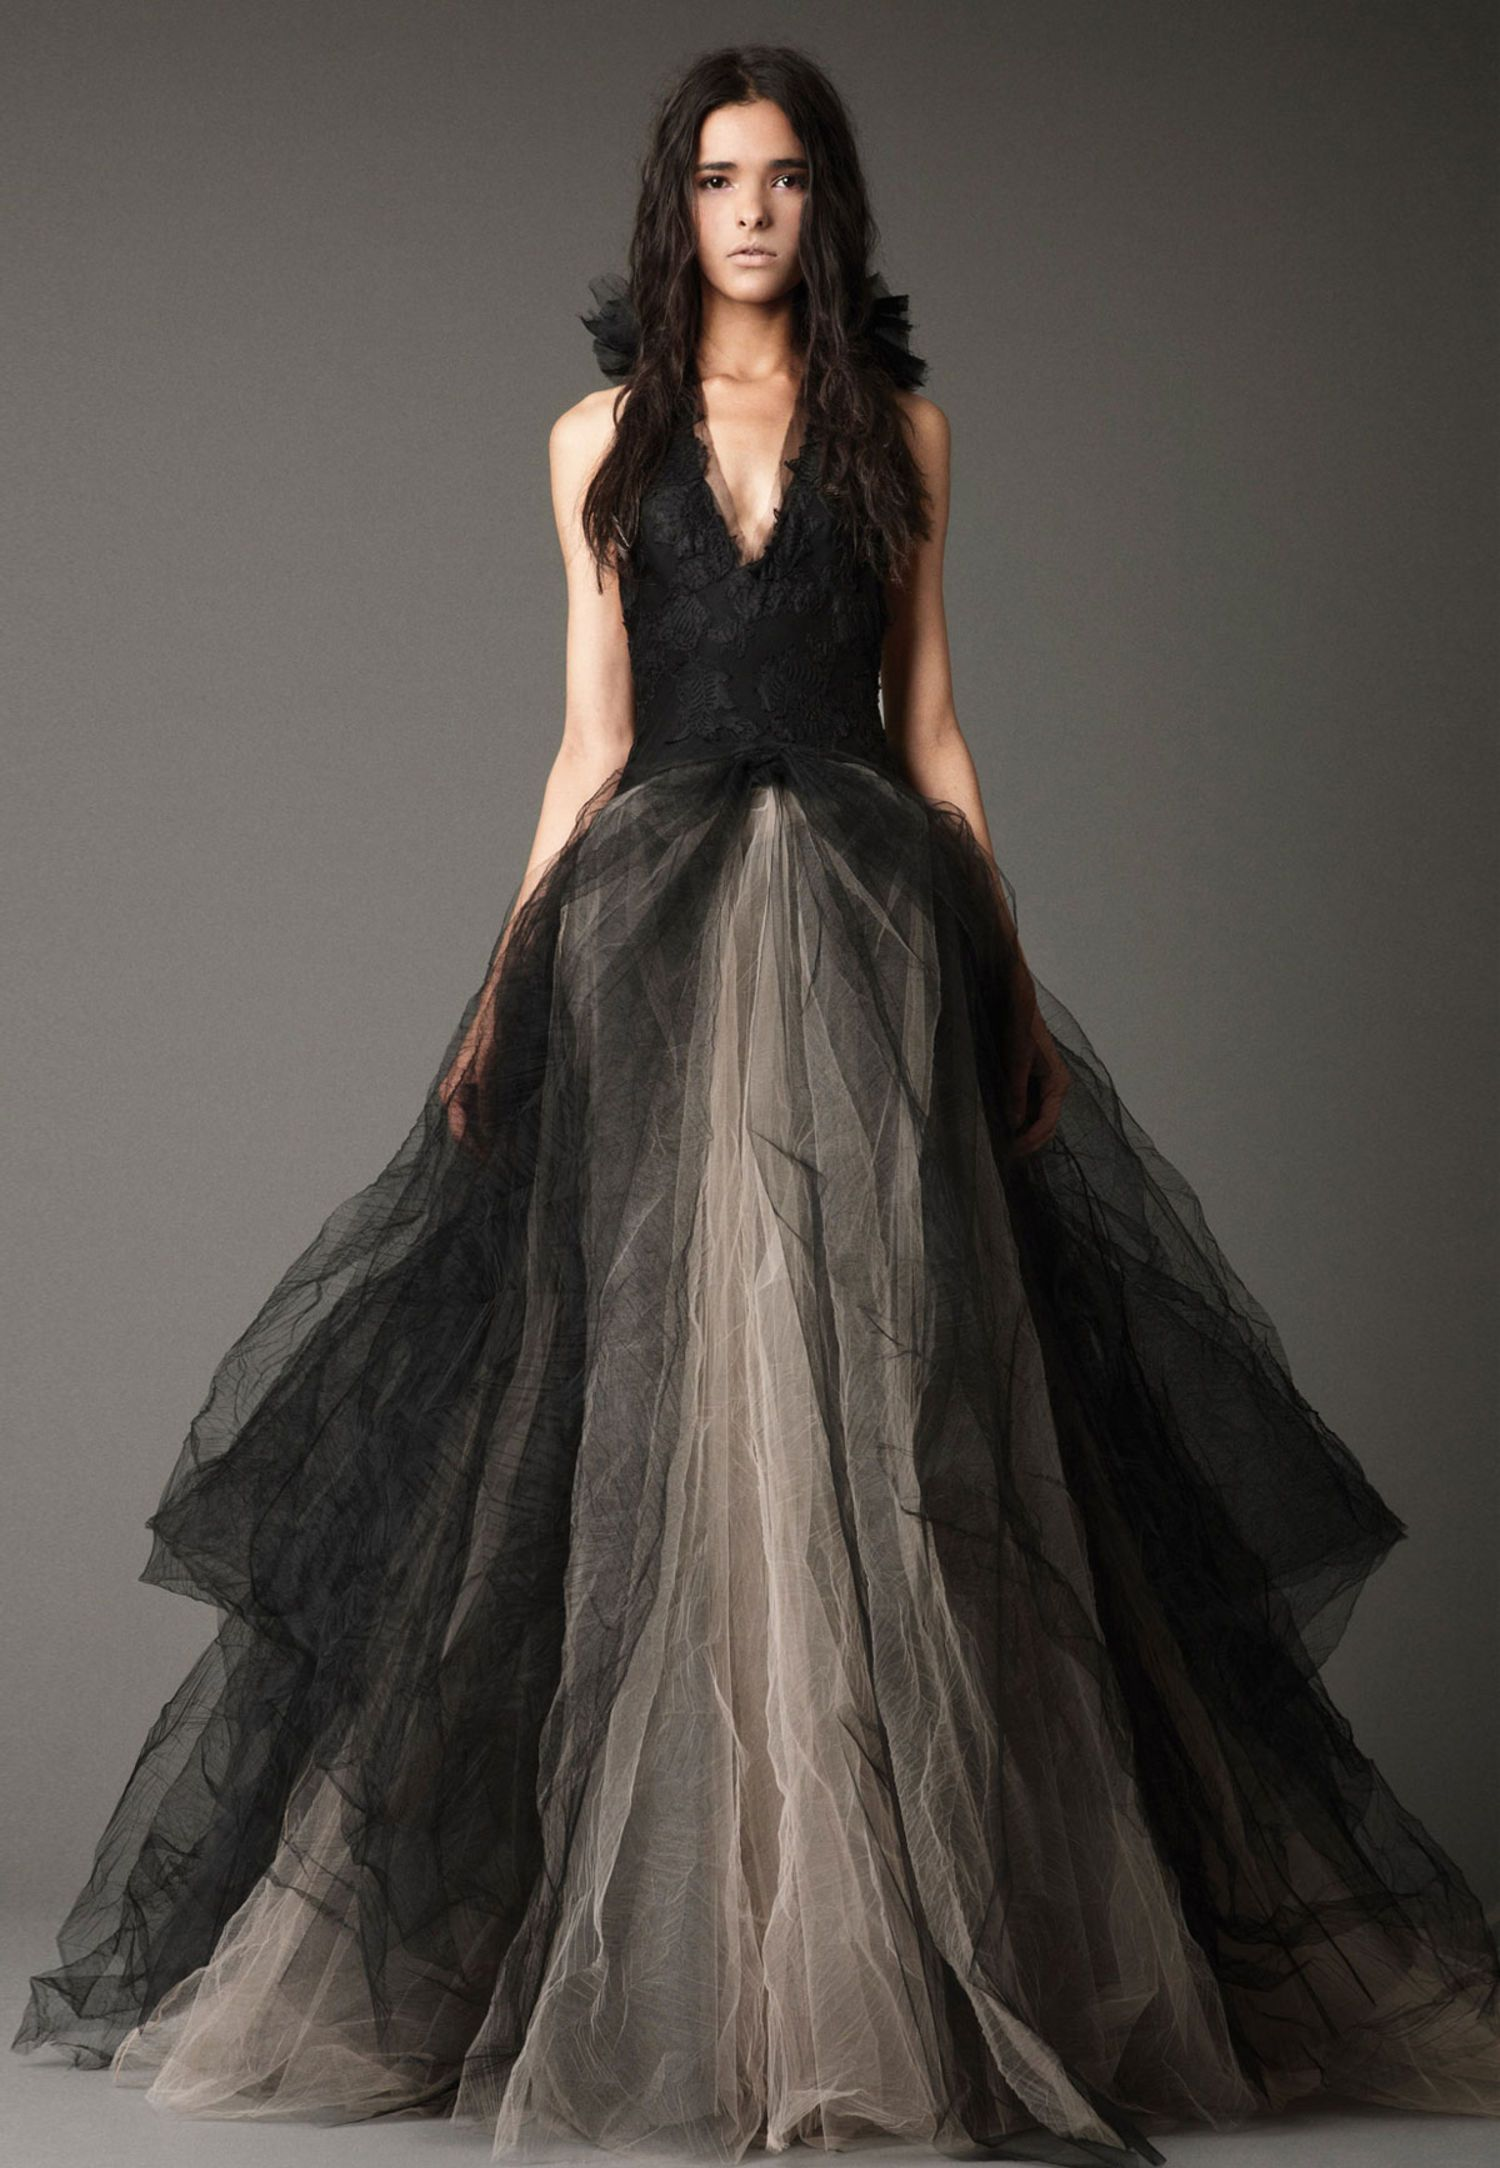 Shenae Grimes Wedding Dress The Bride Wore One Of The Black Vera Wang Gowns And It Looked Awesome On Her Black Wedding Dresses Wedding Dresses Vera Wang Dresses